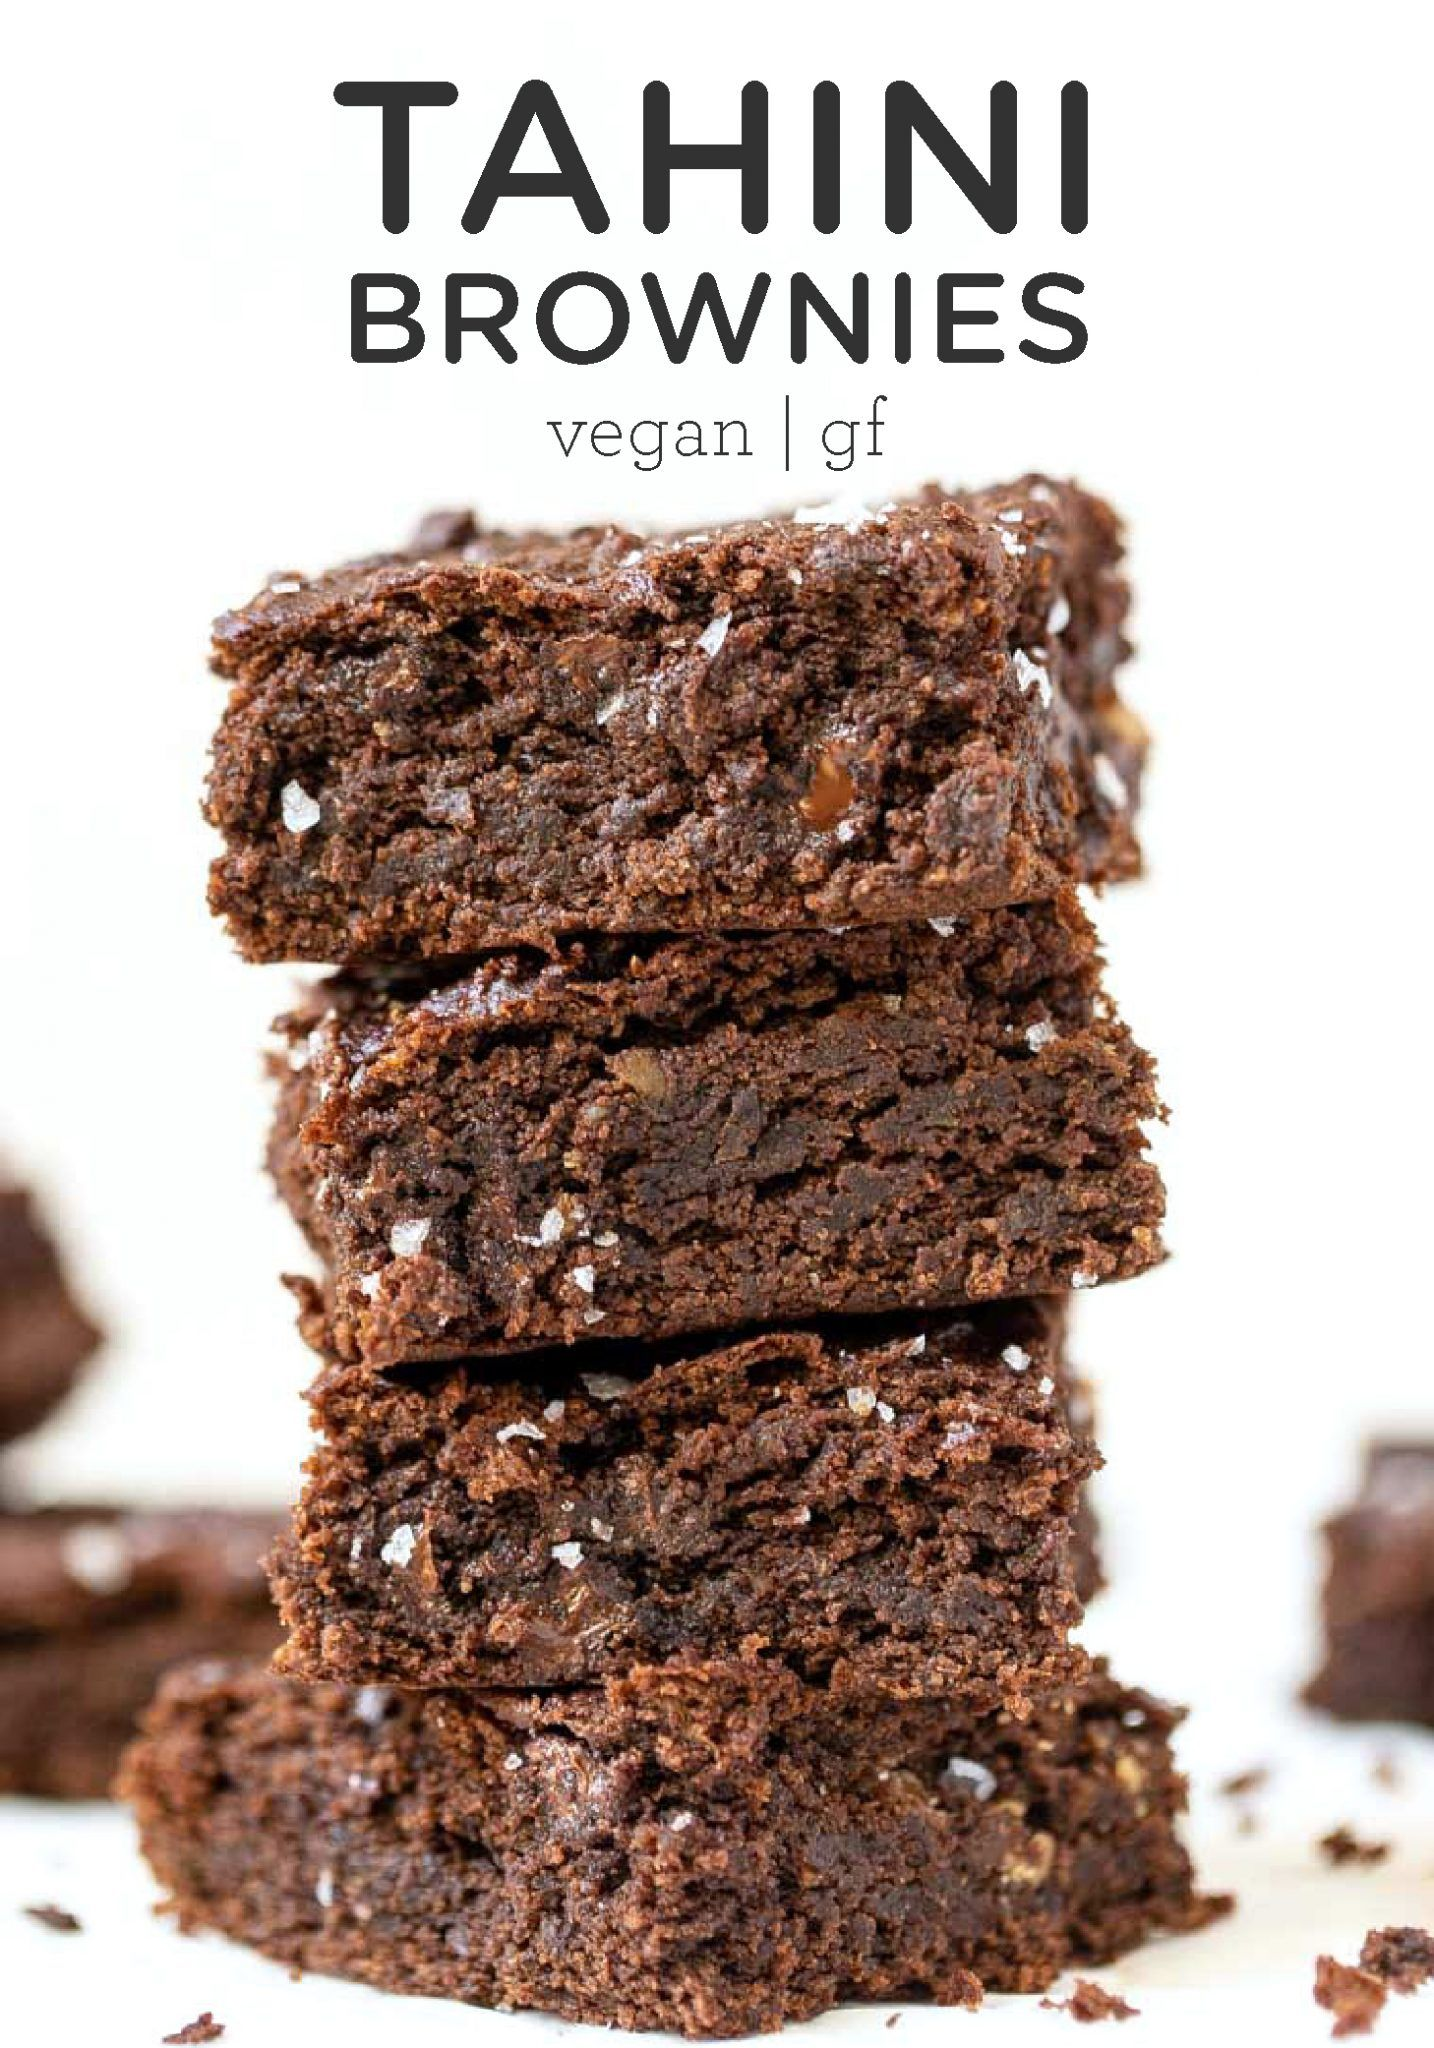 Healthy Tahini Brownies Vegan Gluten Free Simply Quinoa Recipe Coconut Flour Recipes Vegan Brownies Recipe Flour Recipes